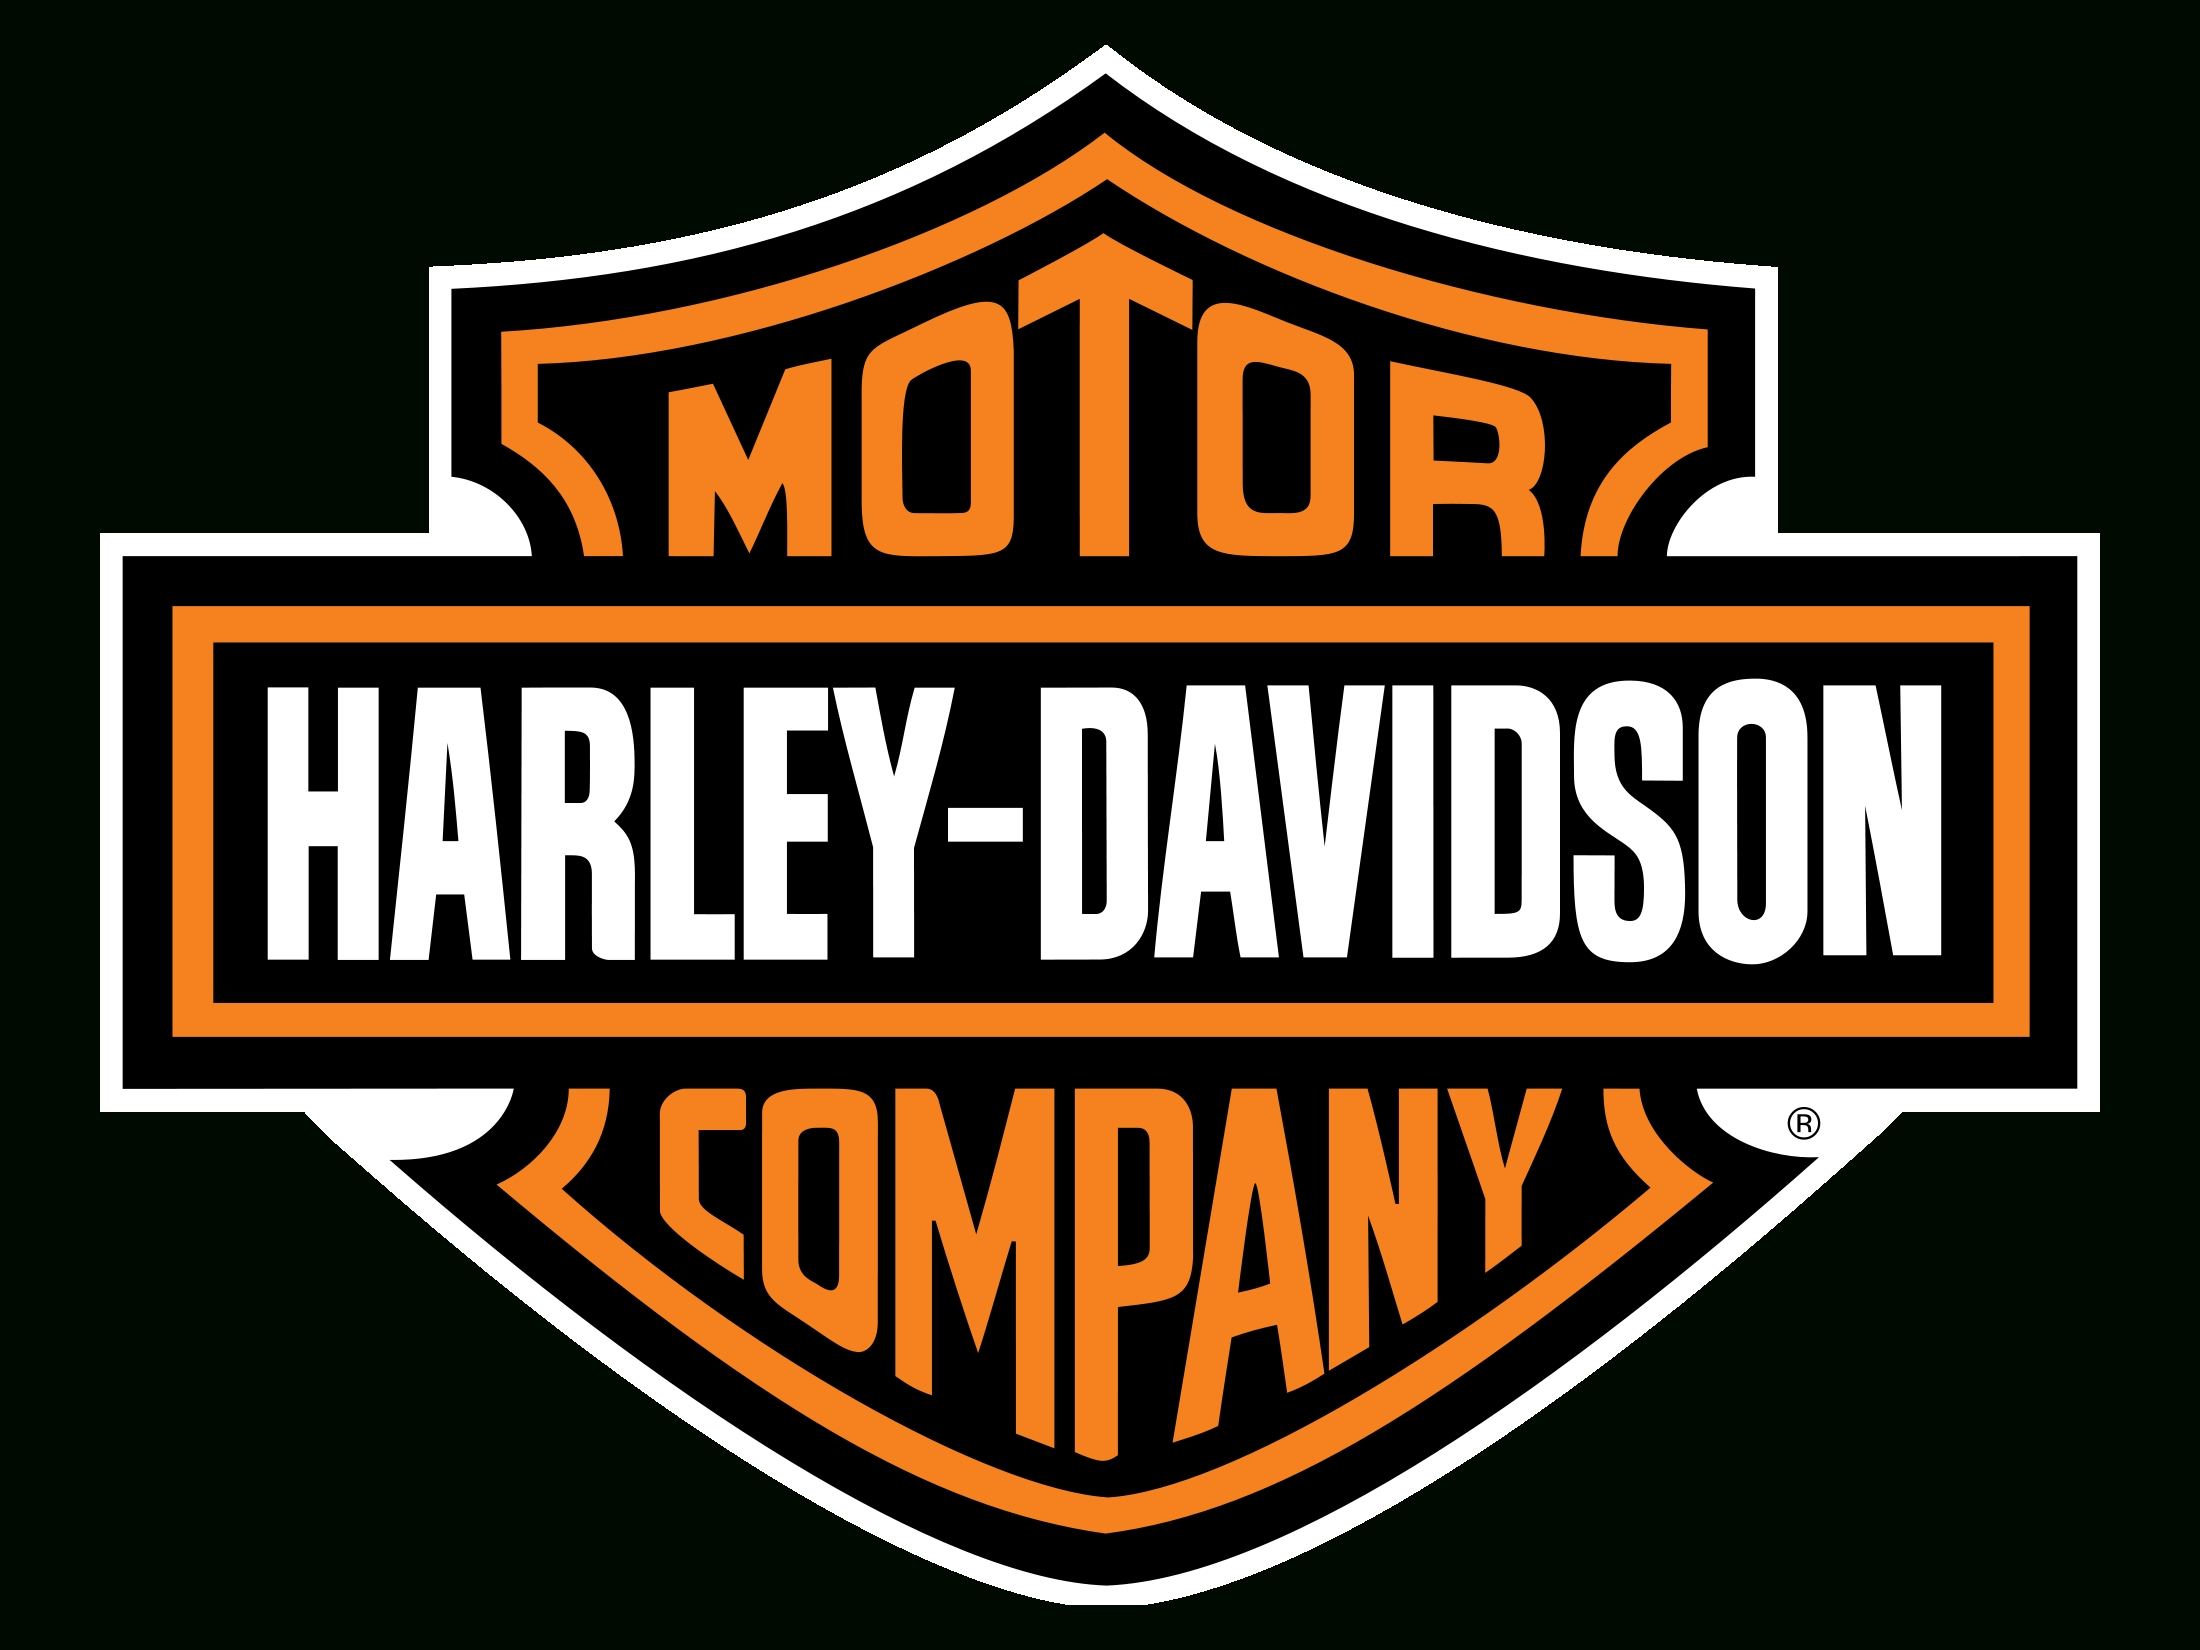 10 Best Images Of Harley Davidson Logo FULL HD 1920×1080 For PC Background